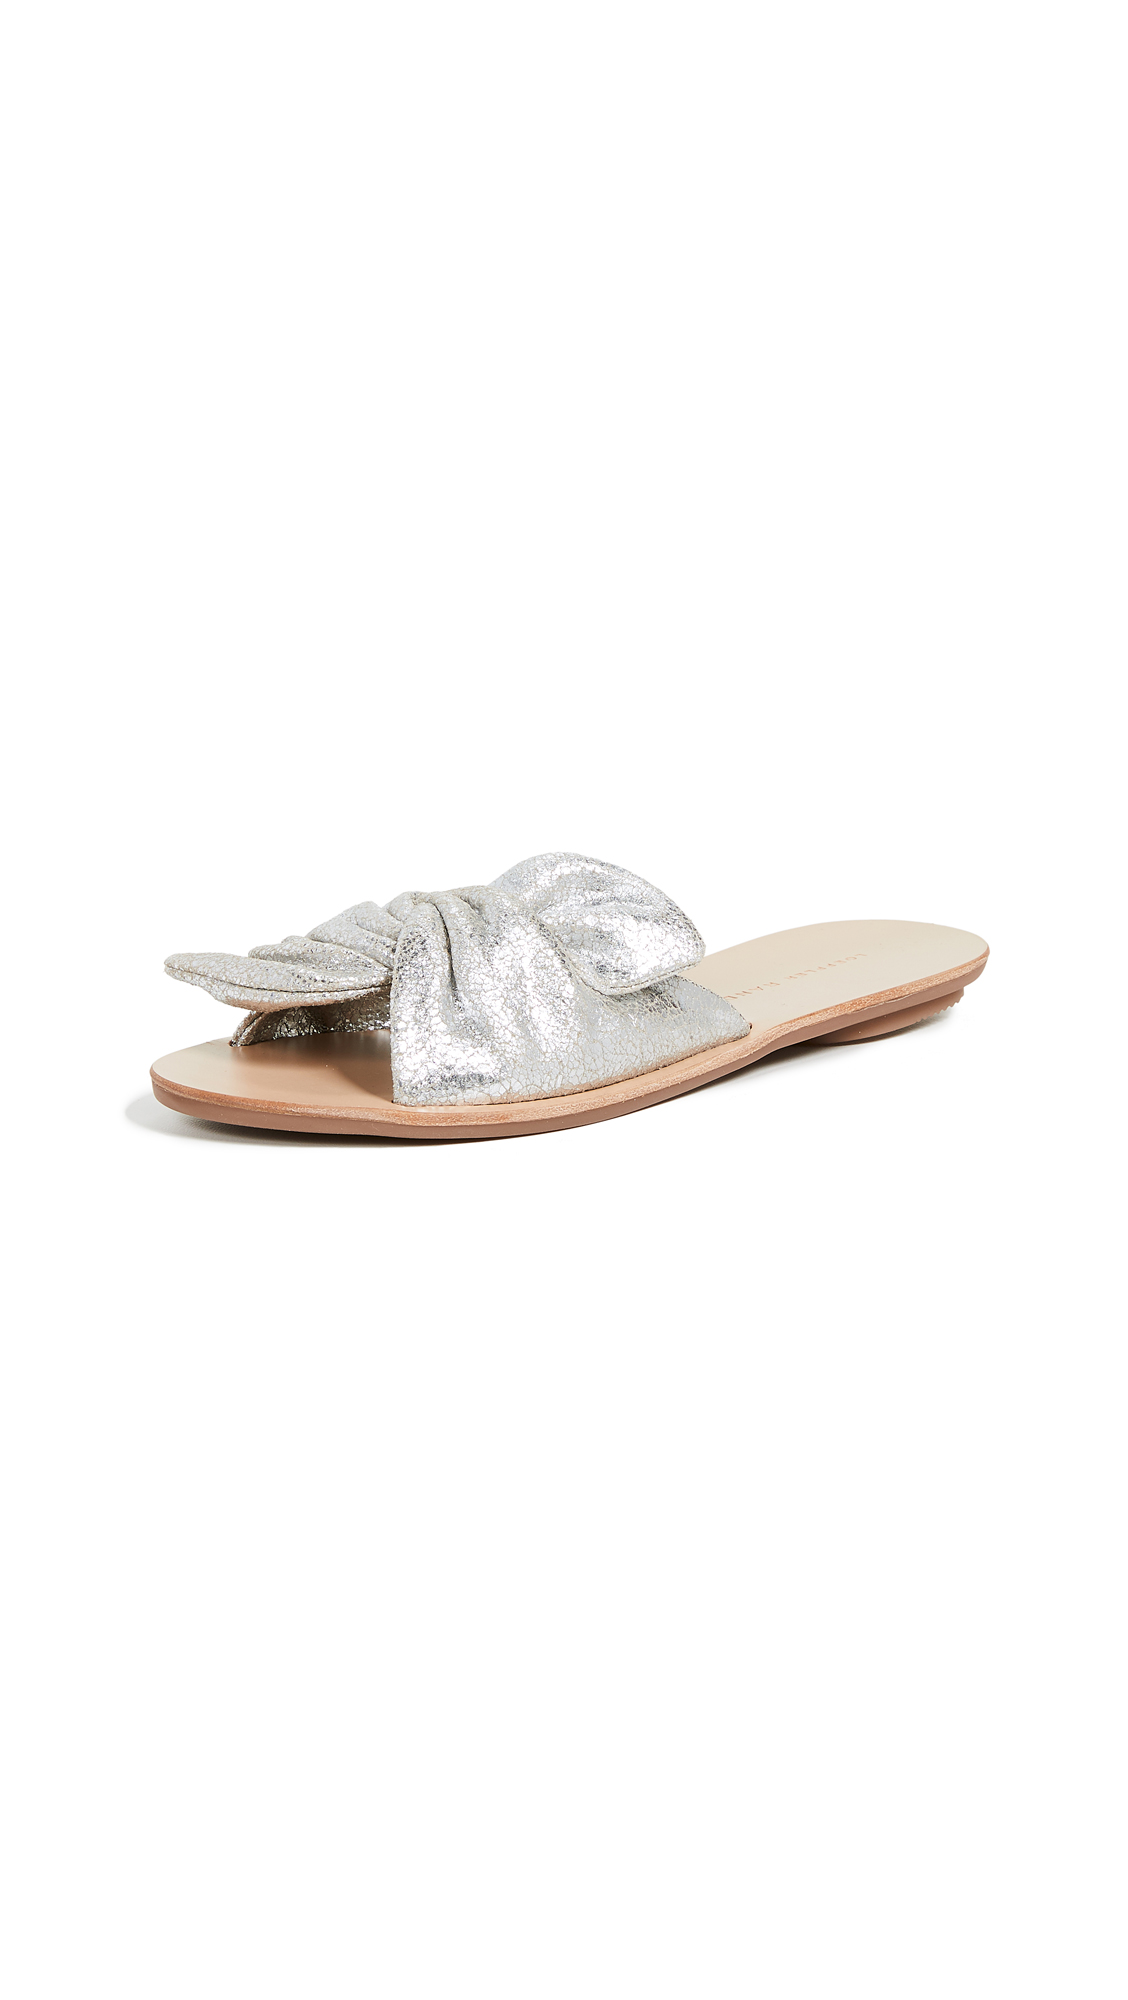 Phoebe Knotted Sandal Slides in Silver